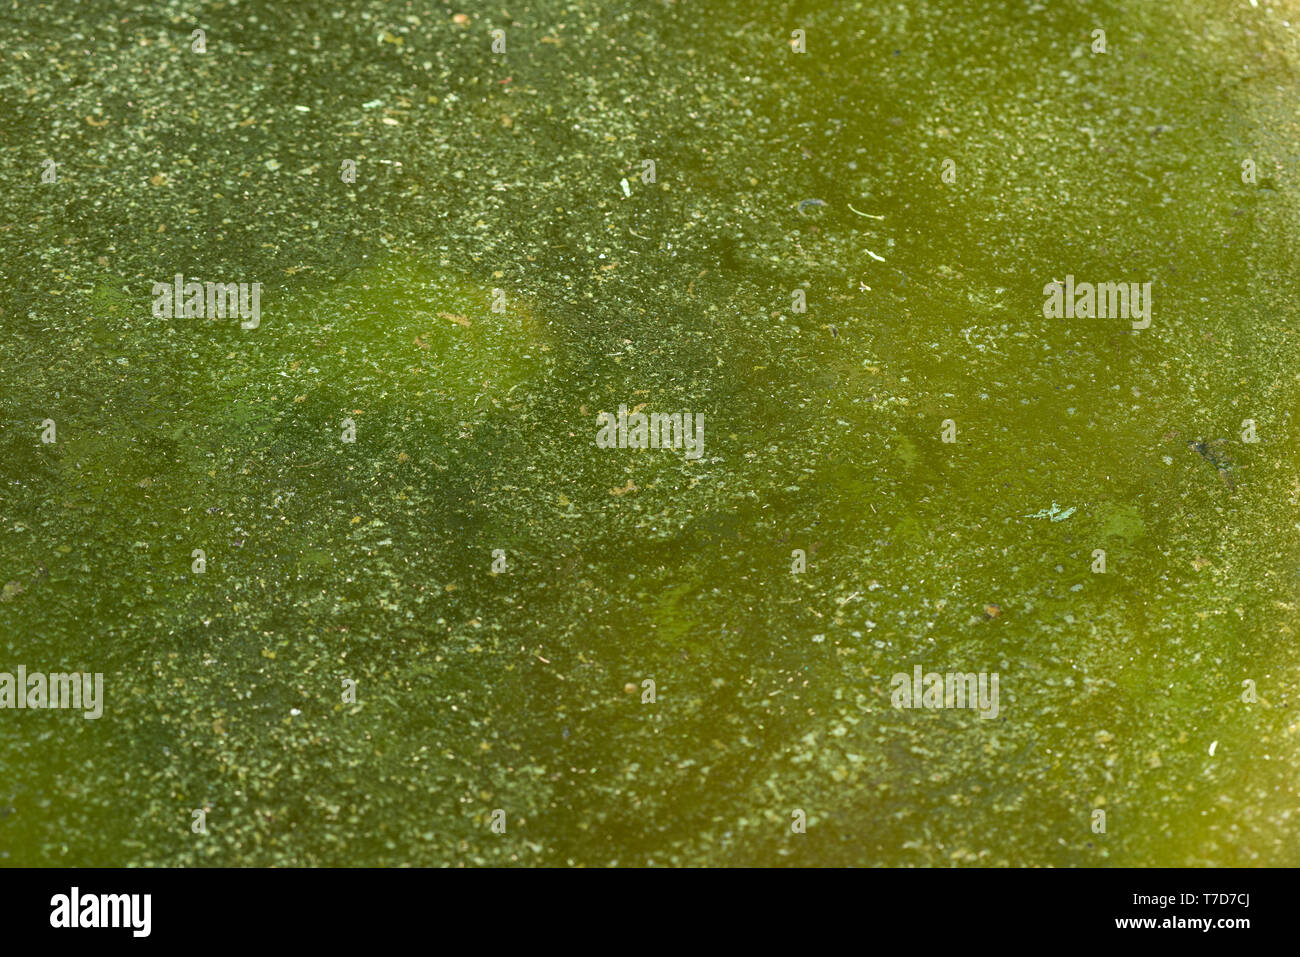 Green algae growing in stagnant still water Stock Photo